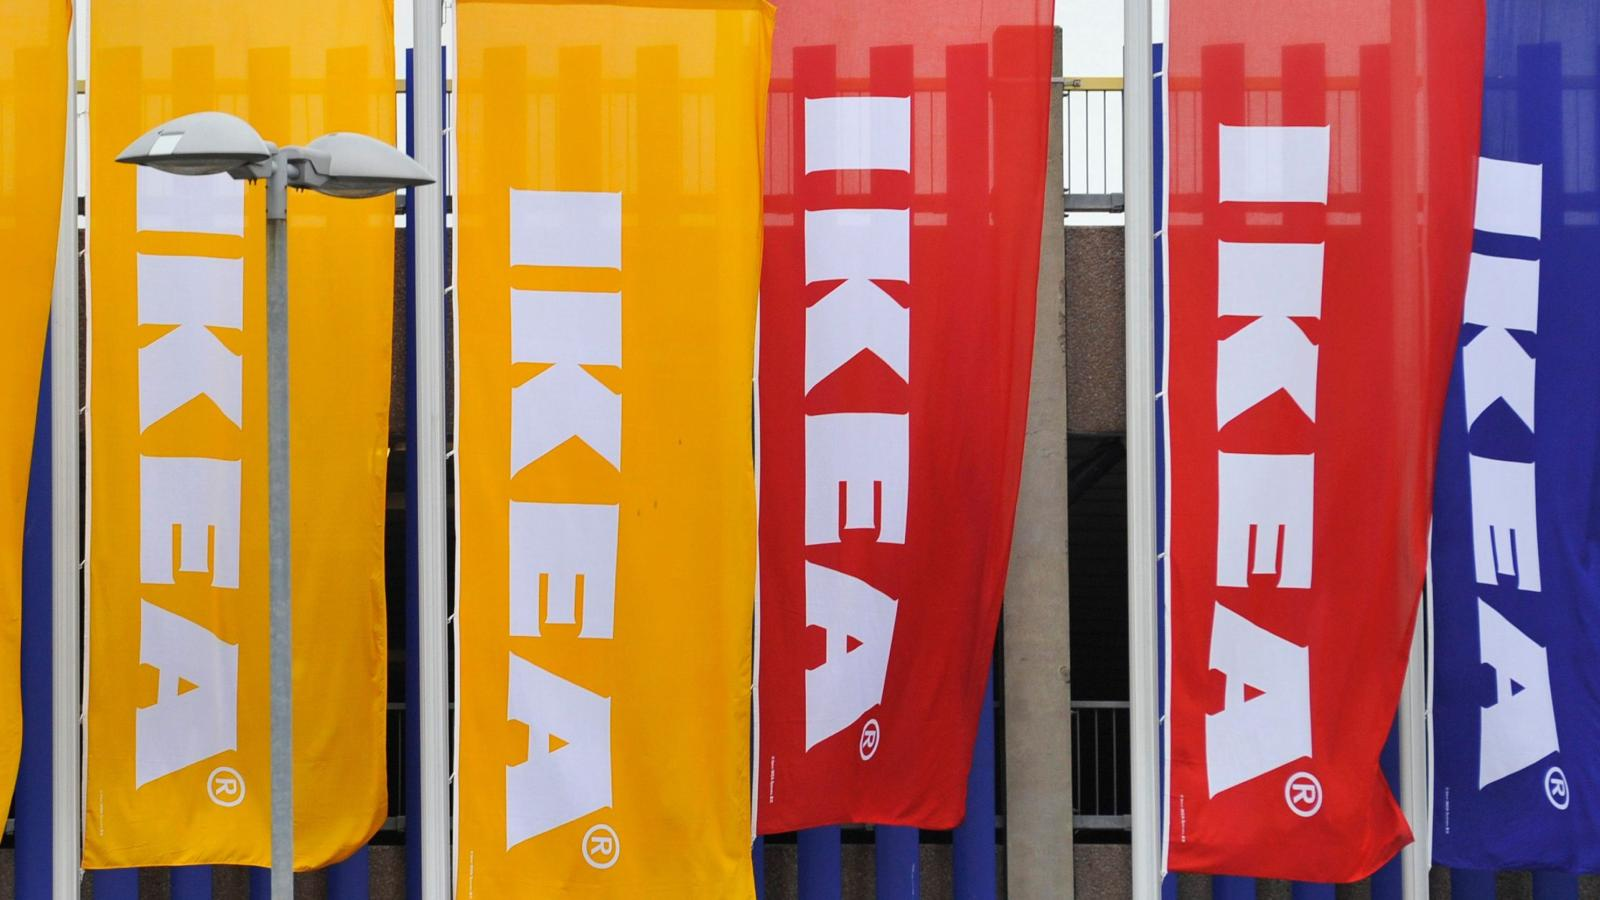 How To Pronounce Ikea The Right Way Quartzy